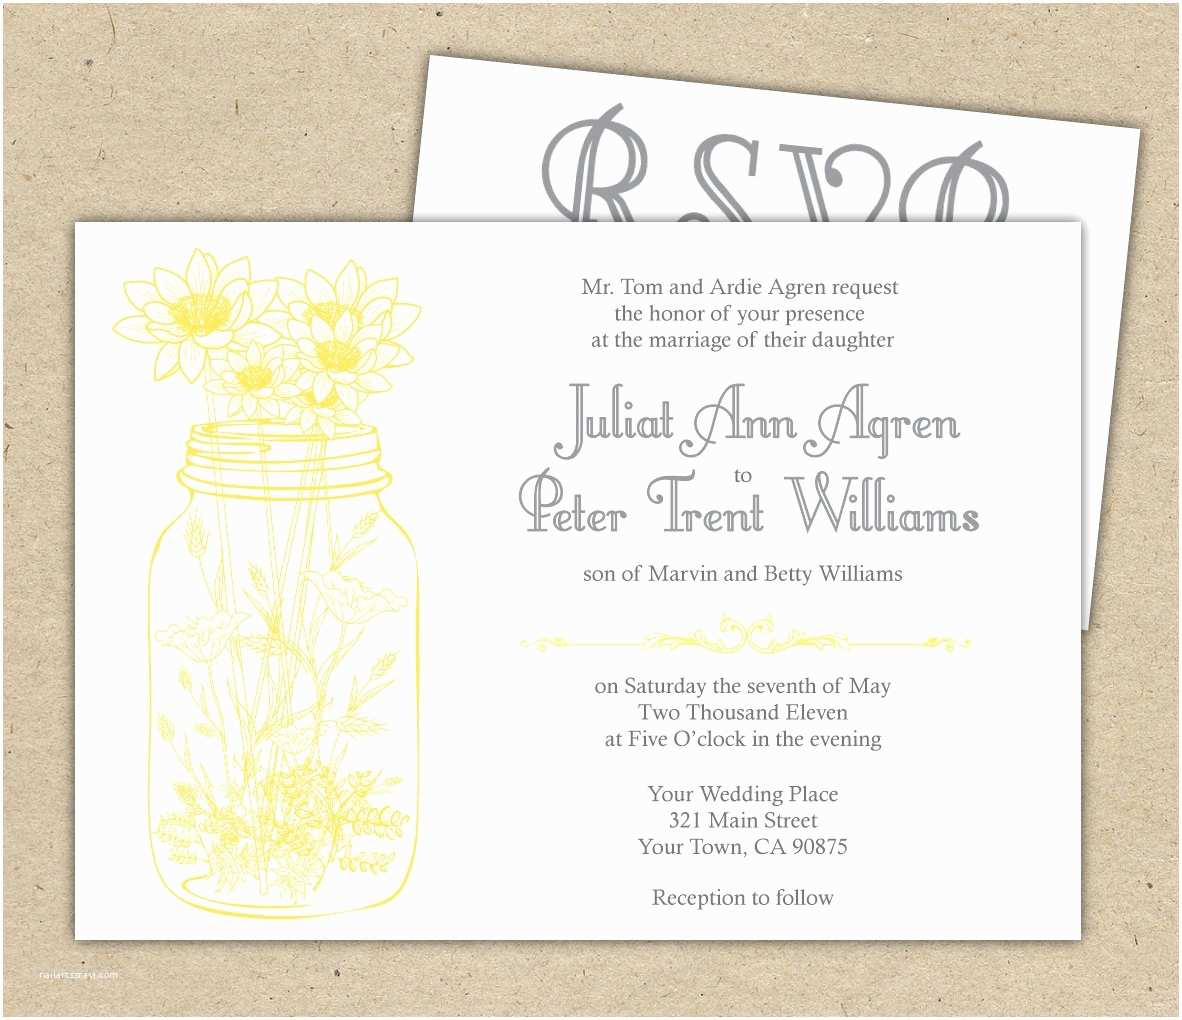 Beautiful Wedding Invitation Wording Elegant Wedding Invitation Wording with Line Rsvp